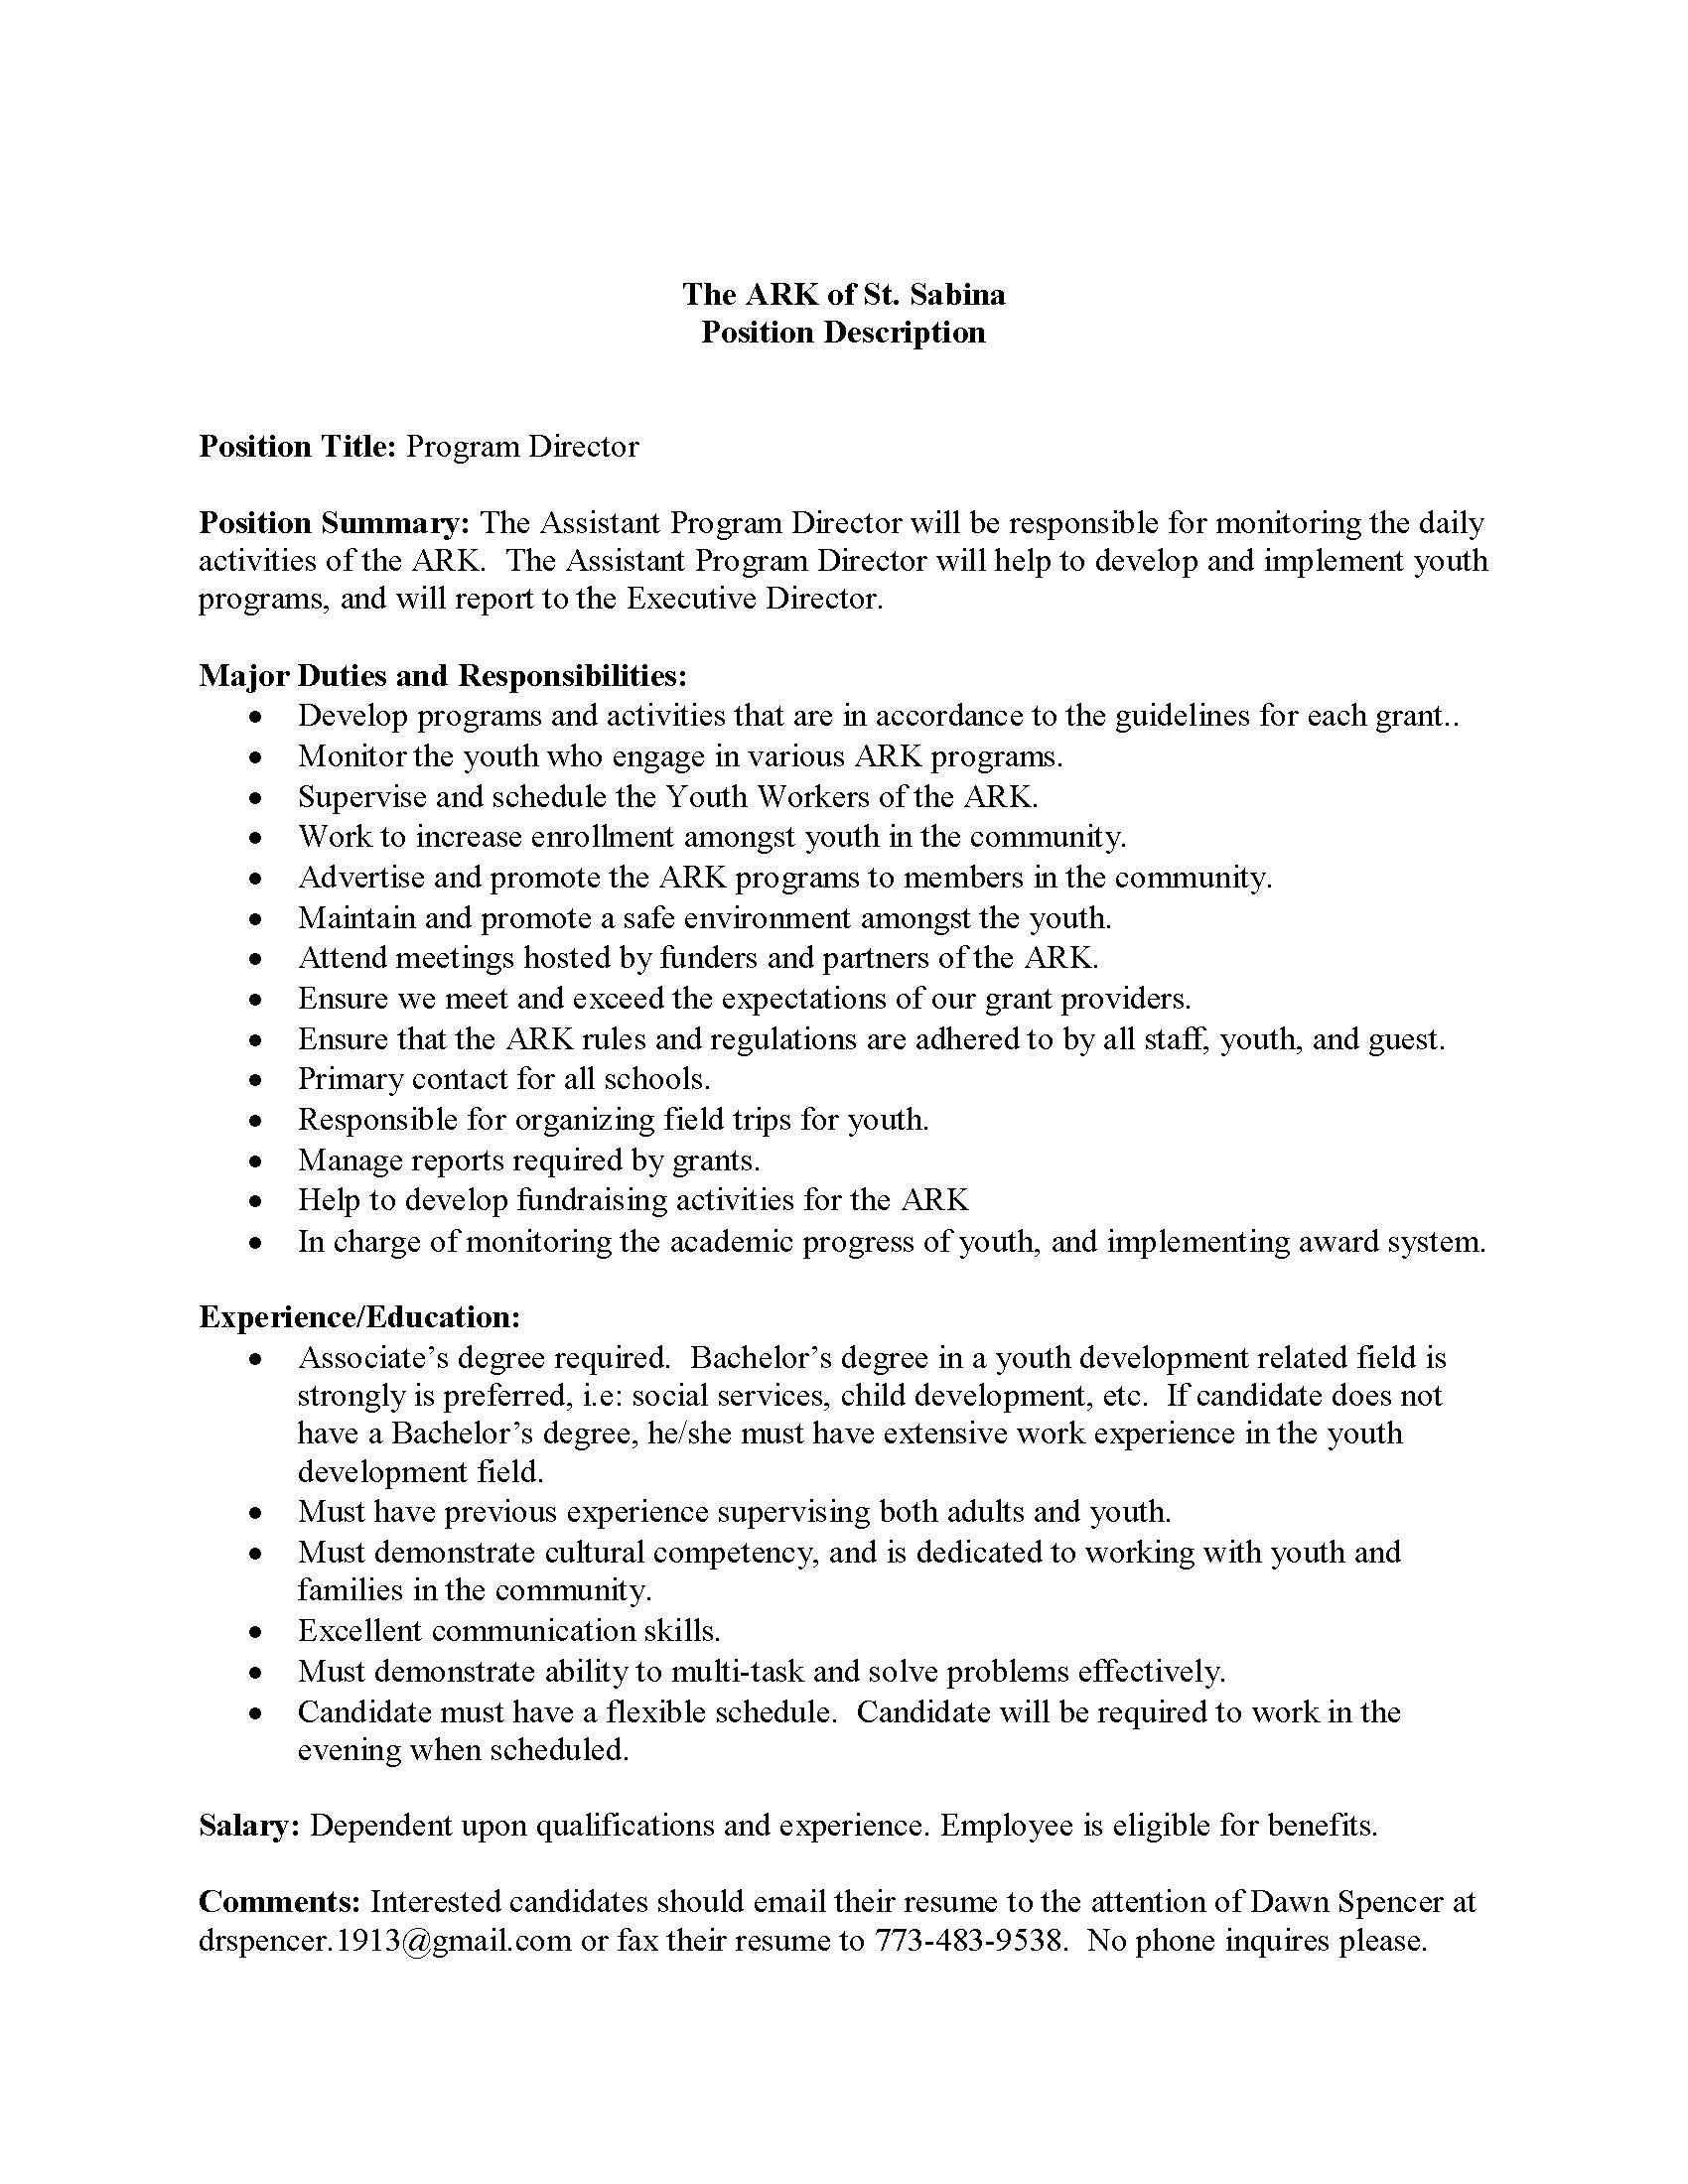 Assistant Program Director Position at The ARK of St Sabina – Assistant Director Job Description